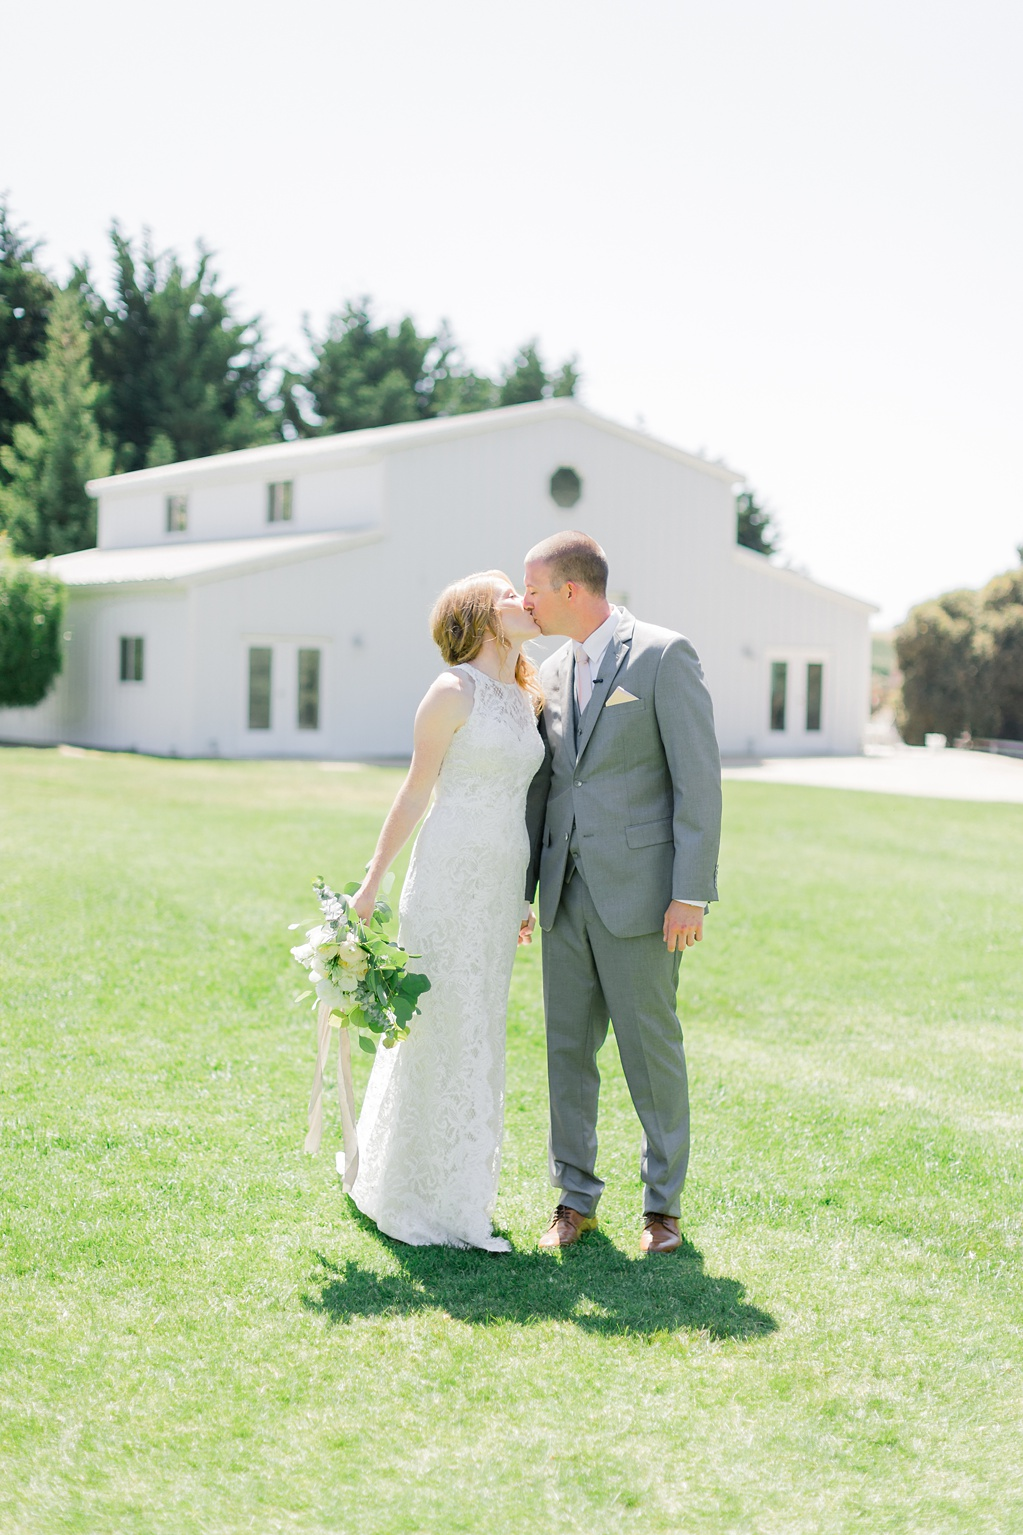 White Barn Inspired Summer Wedding In The Valley of Arroyo Grande, California by Wedding Photographer Madison Ellis (41)